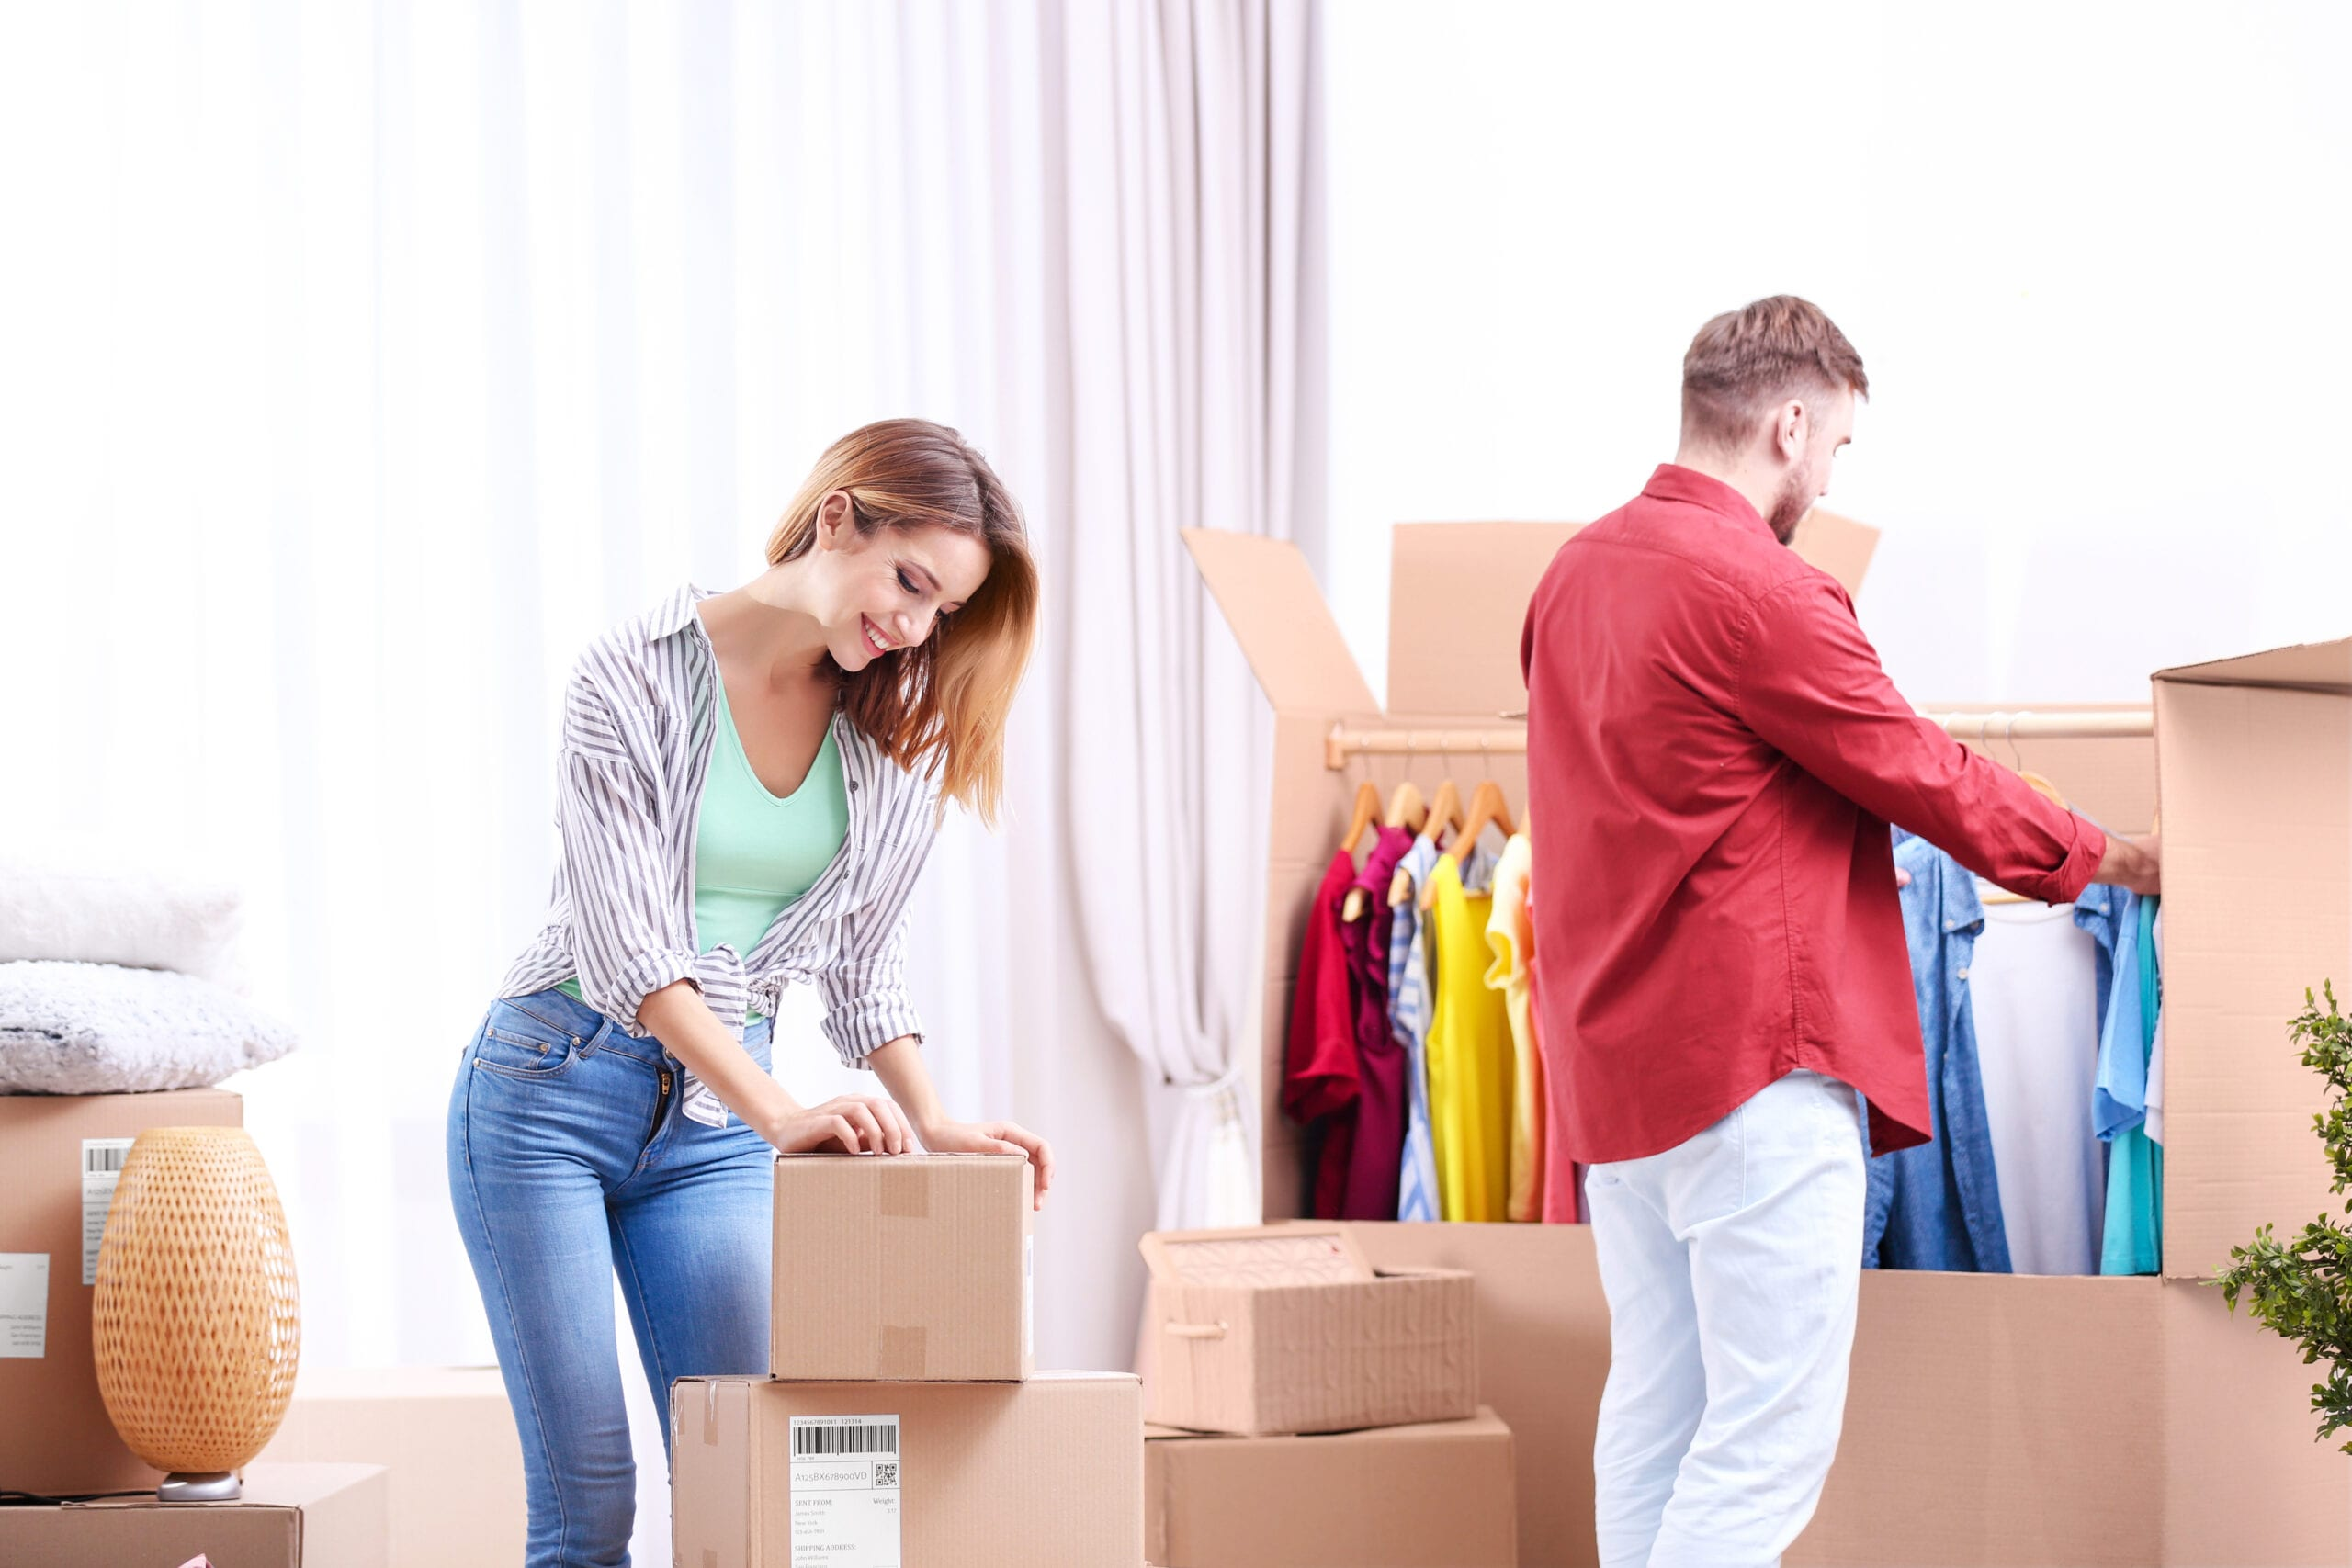 How to pack clothes for move